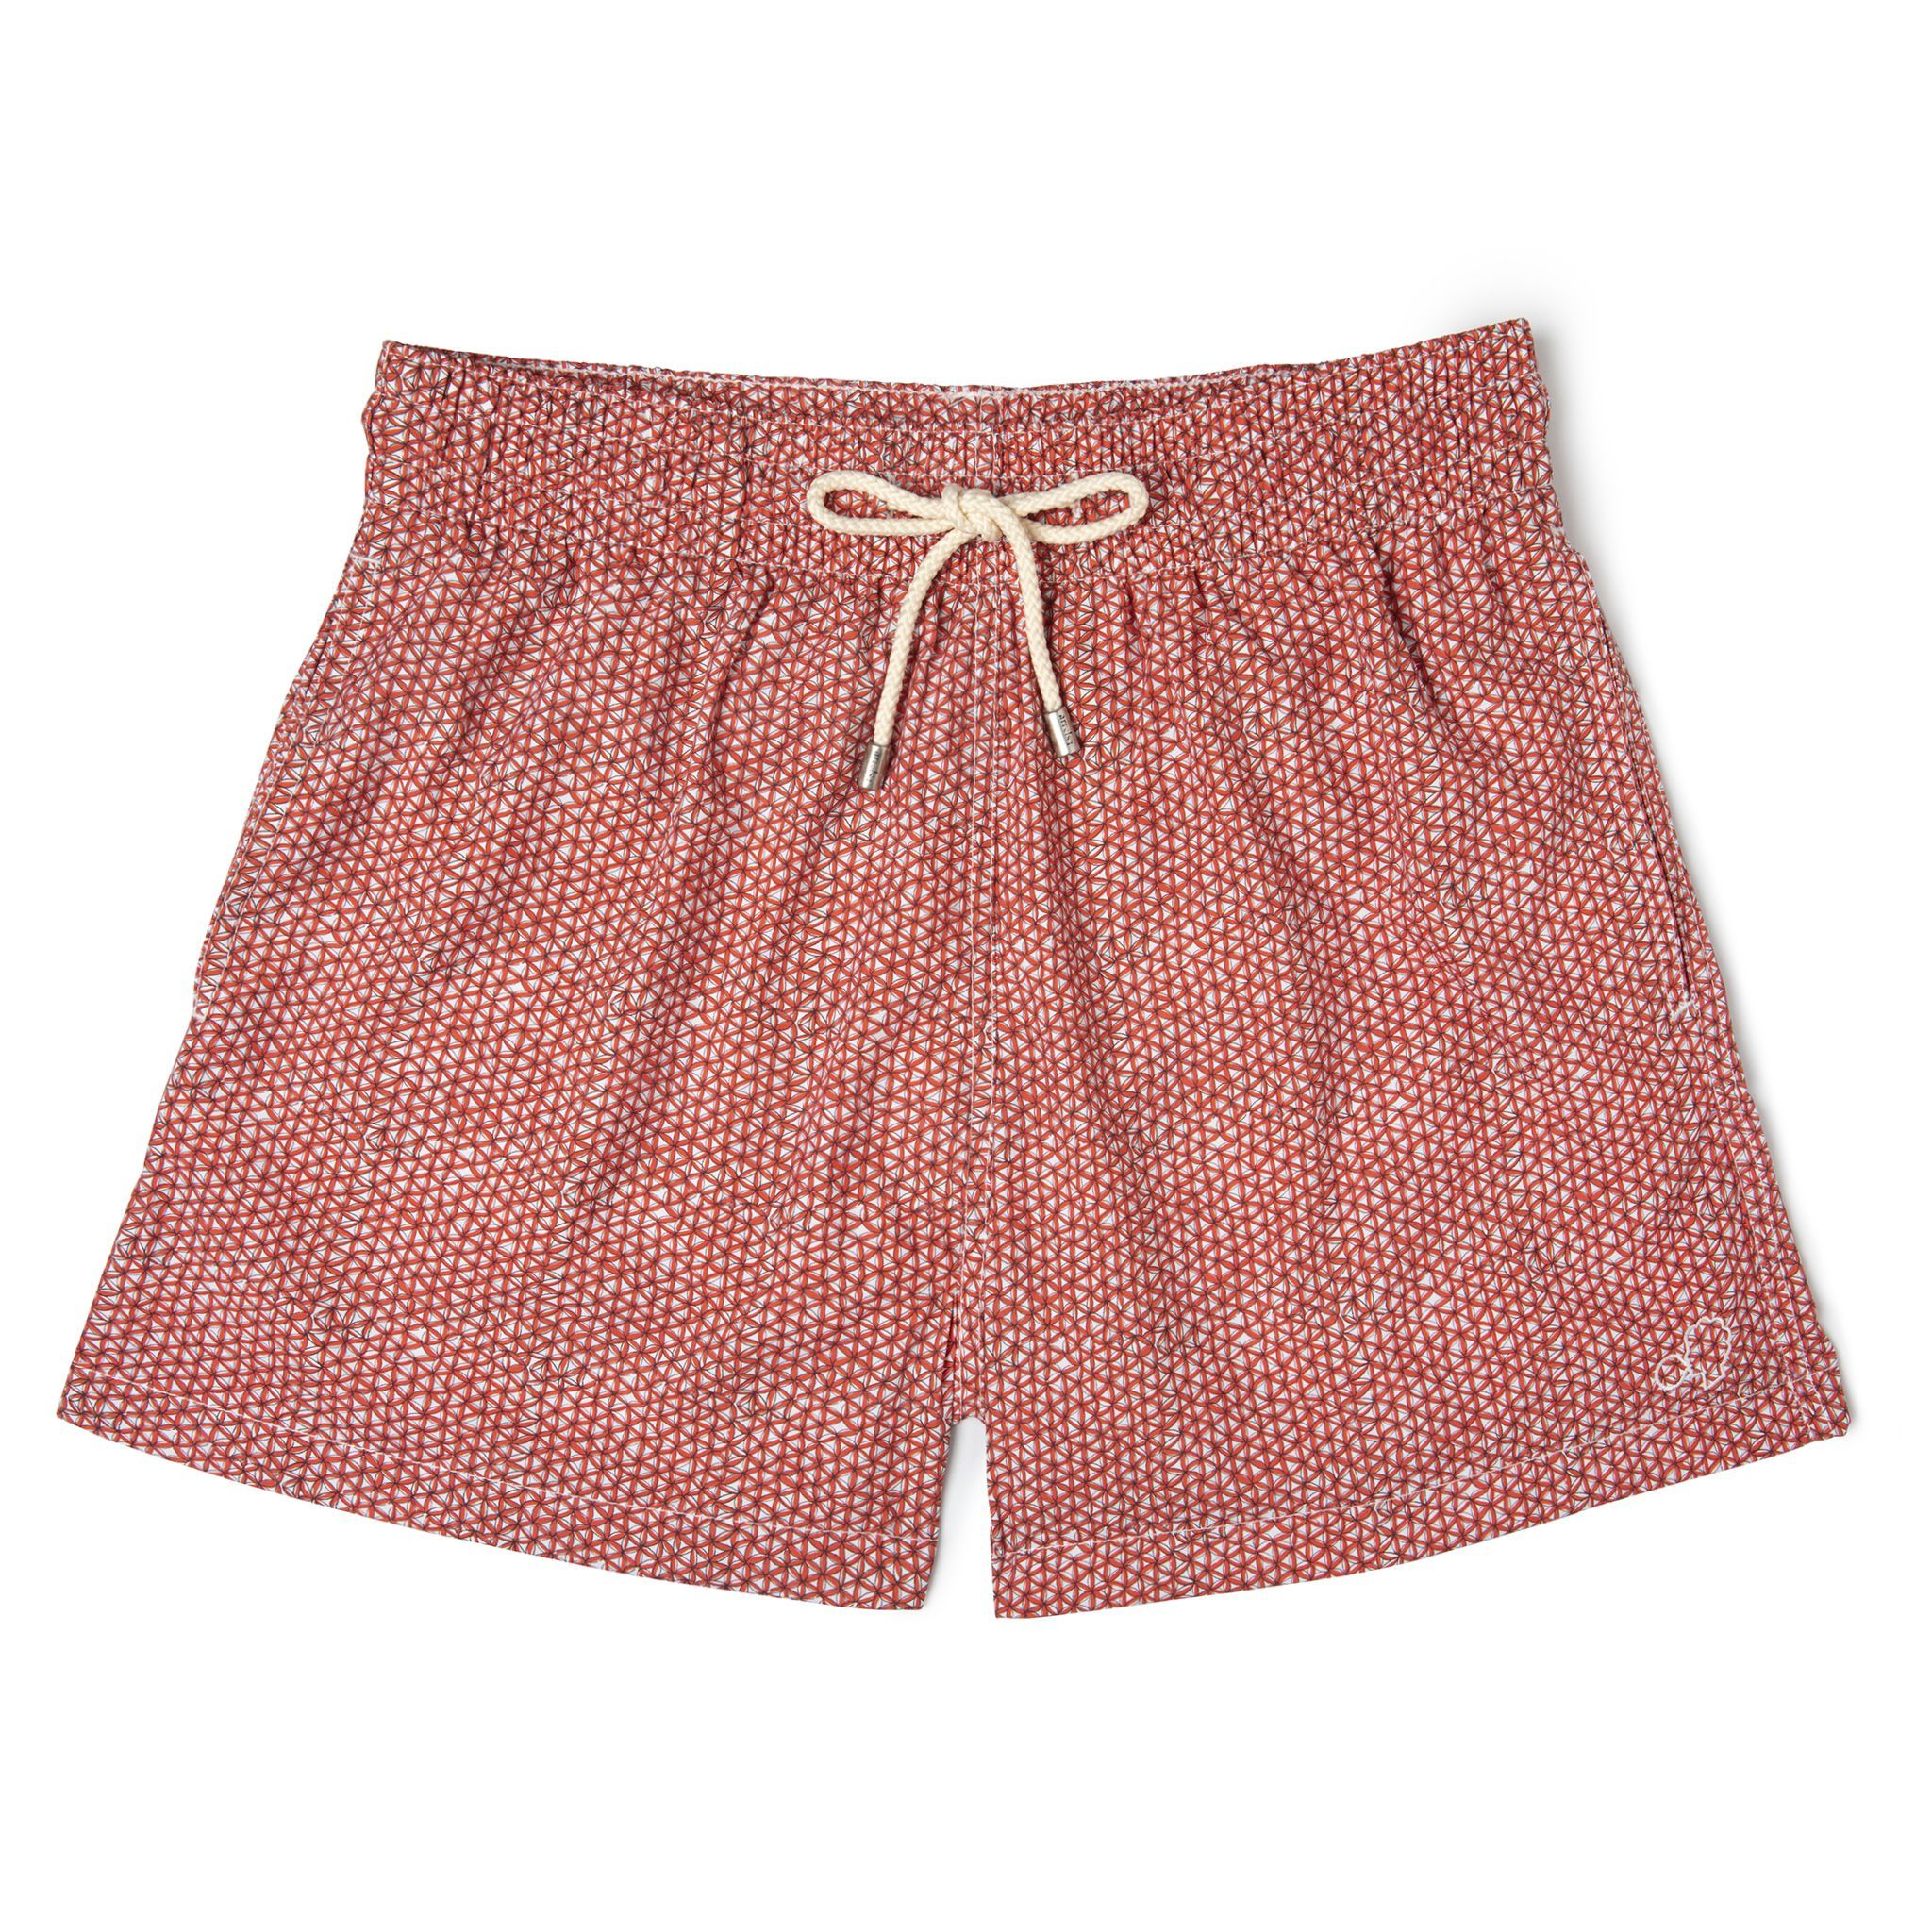 Short-Length Swim Shorts Red Net